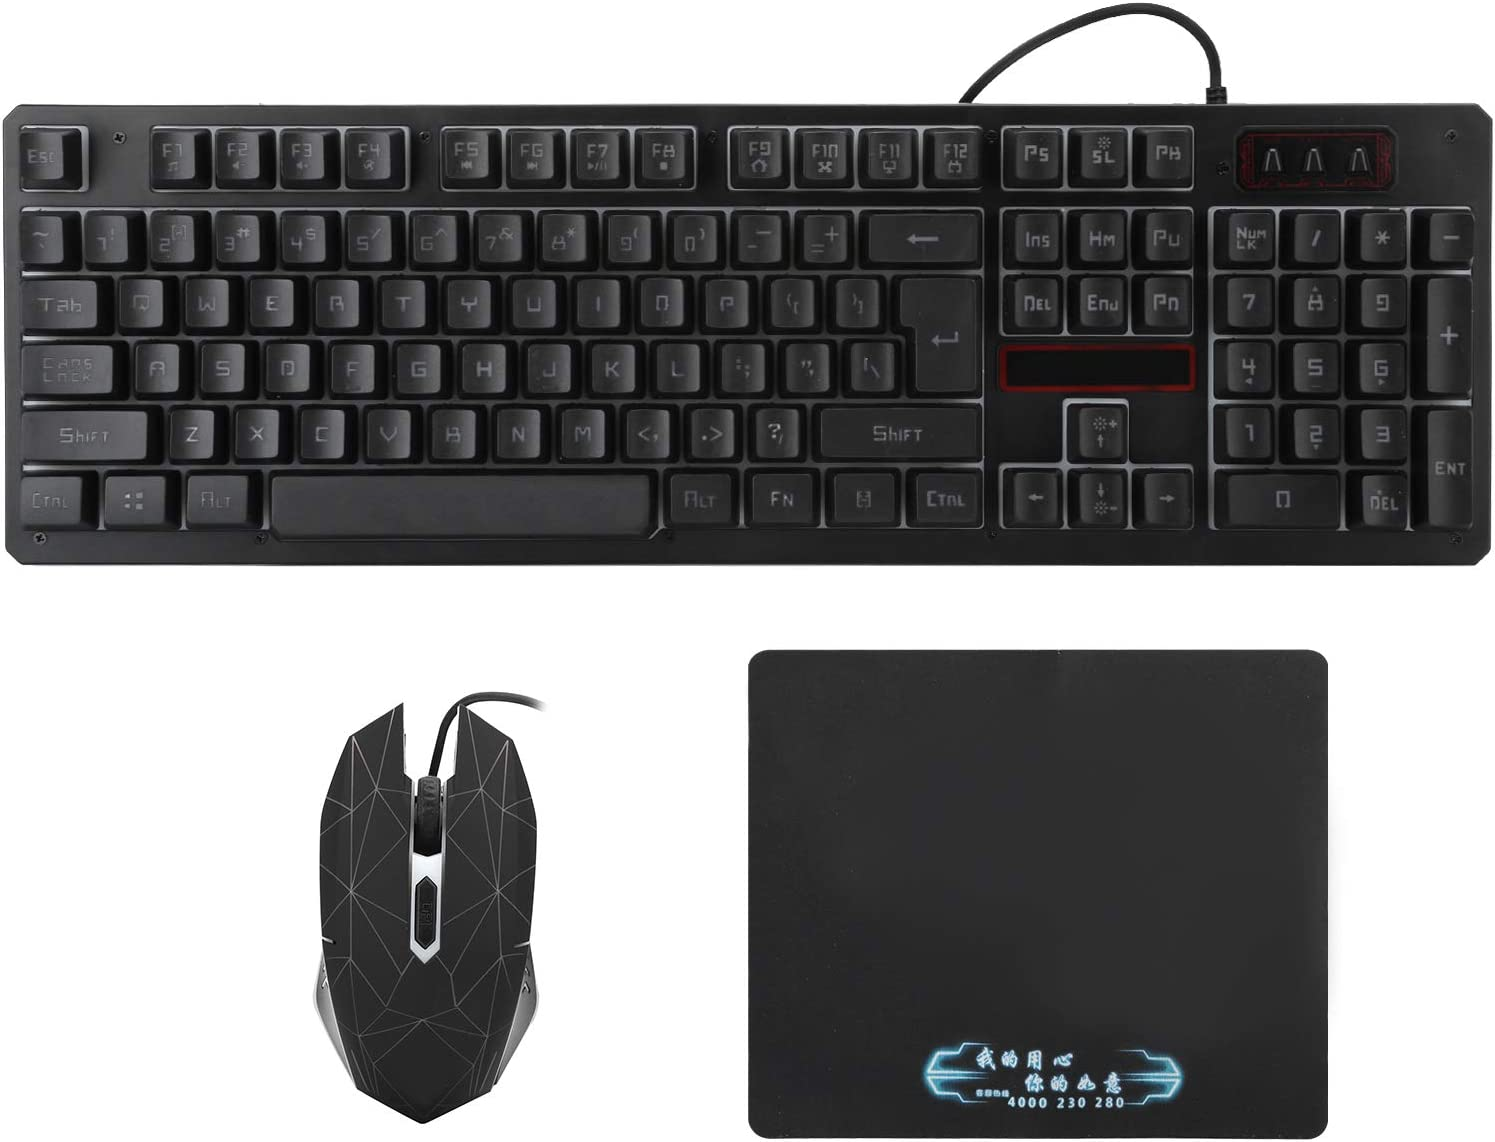 Keyboard Mouse Set, USB Wired Backlit Gaming Keyboard Mouse for Computer True 19‑Key Conflict‑Free Design, 75‑Degree Oblique Angle Base, Four‑Speed DPI Adjustable, Durable and Convenient(black)